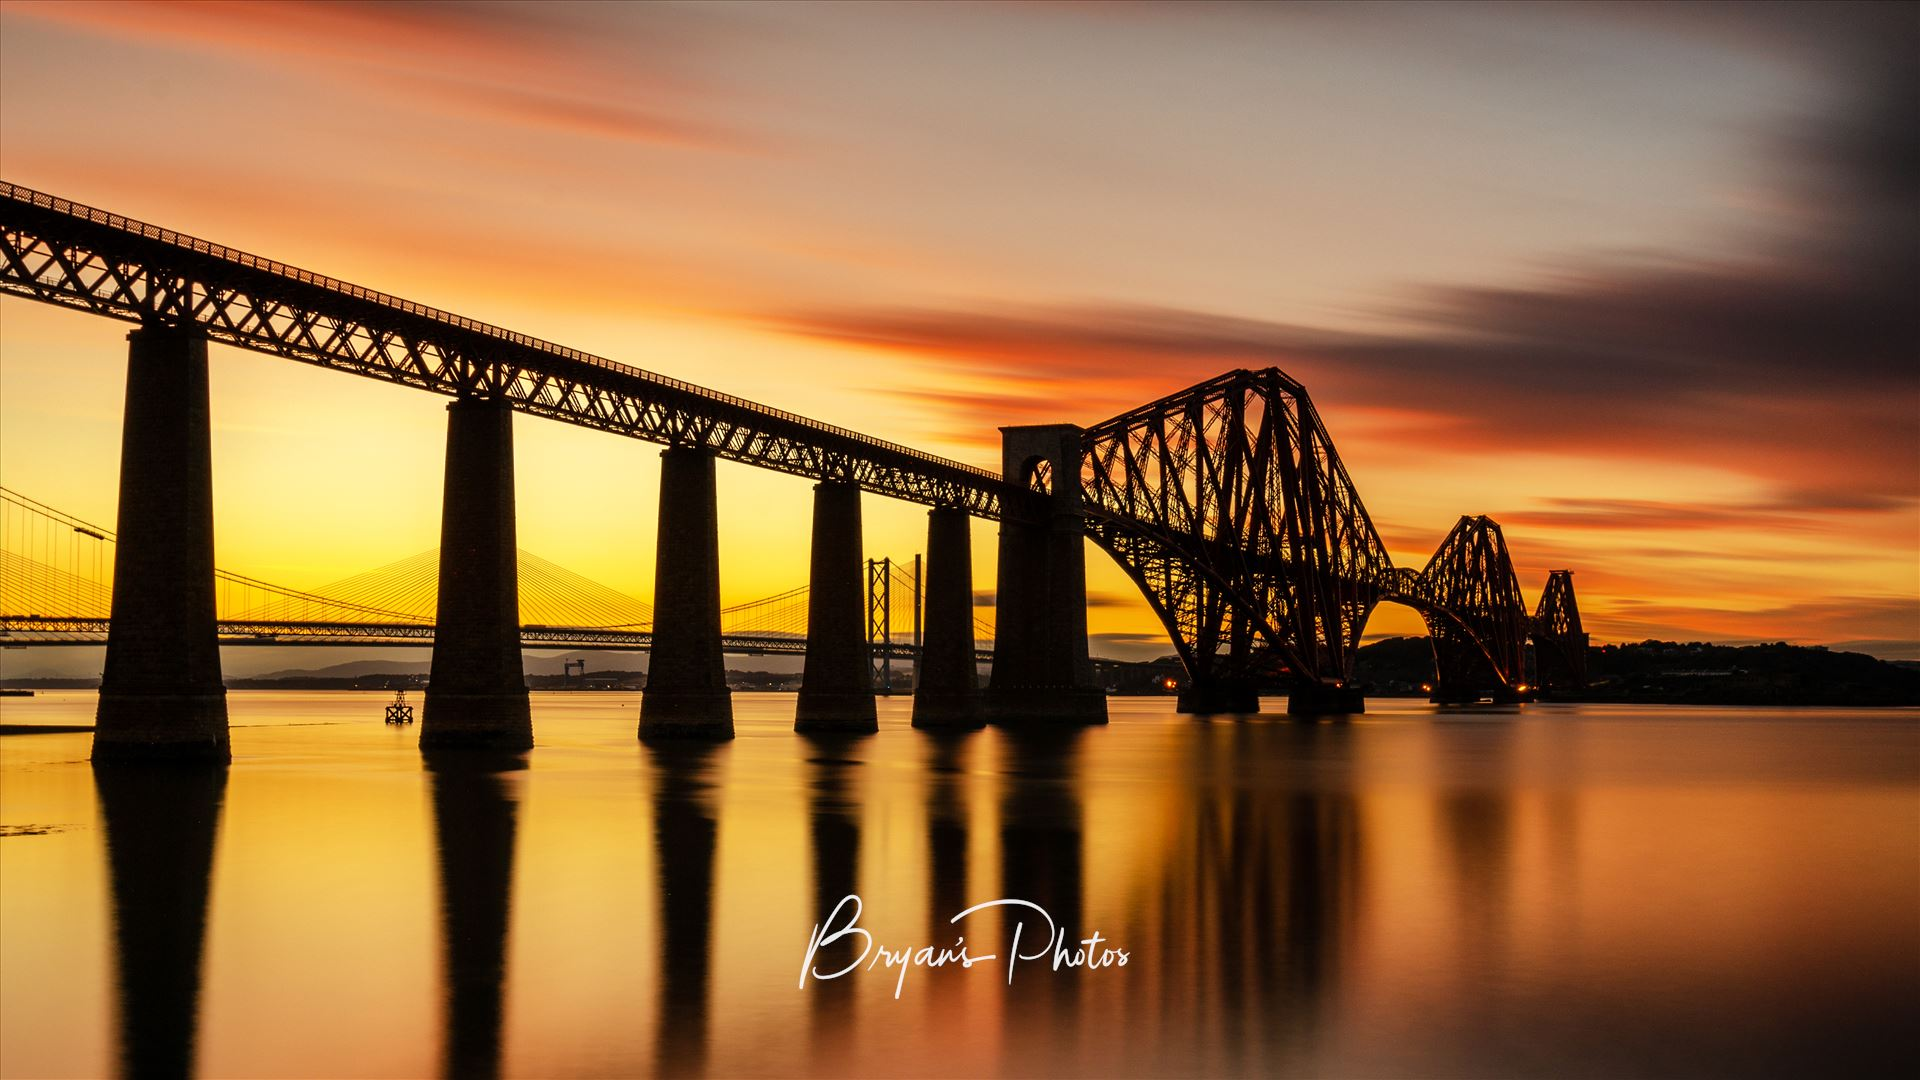 Rail Bridge Sunset Panorama A panoramic photograph of the Forth Rail Bridge taken at sunset from South Queensferry. by Bryans Photos